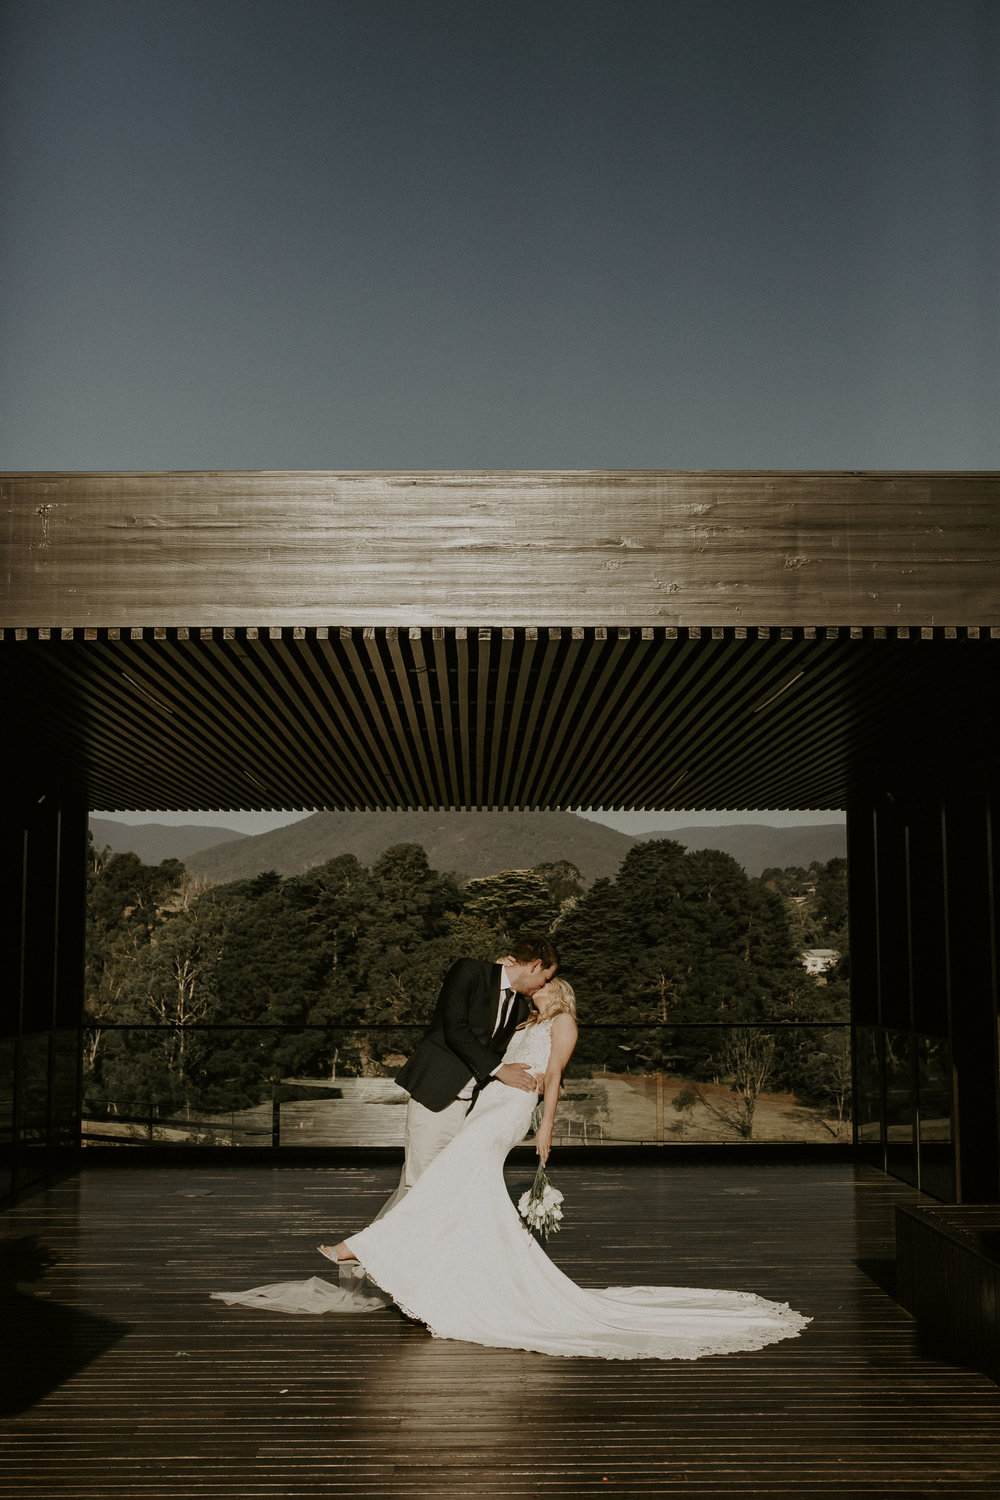 Jaclyn+Matt_Wedding_TT_0501.jpg